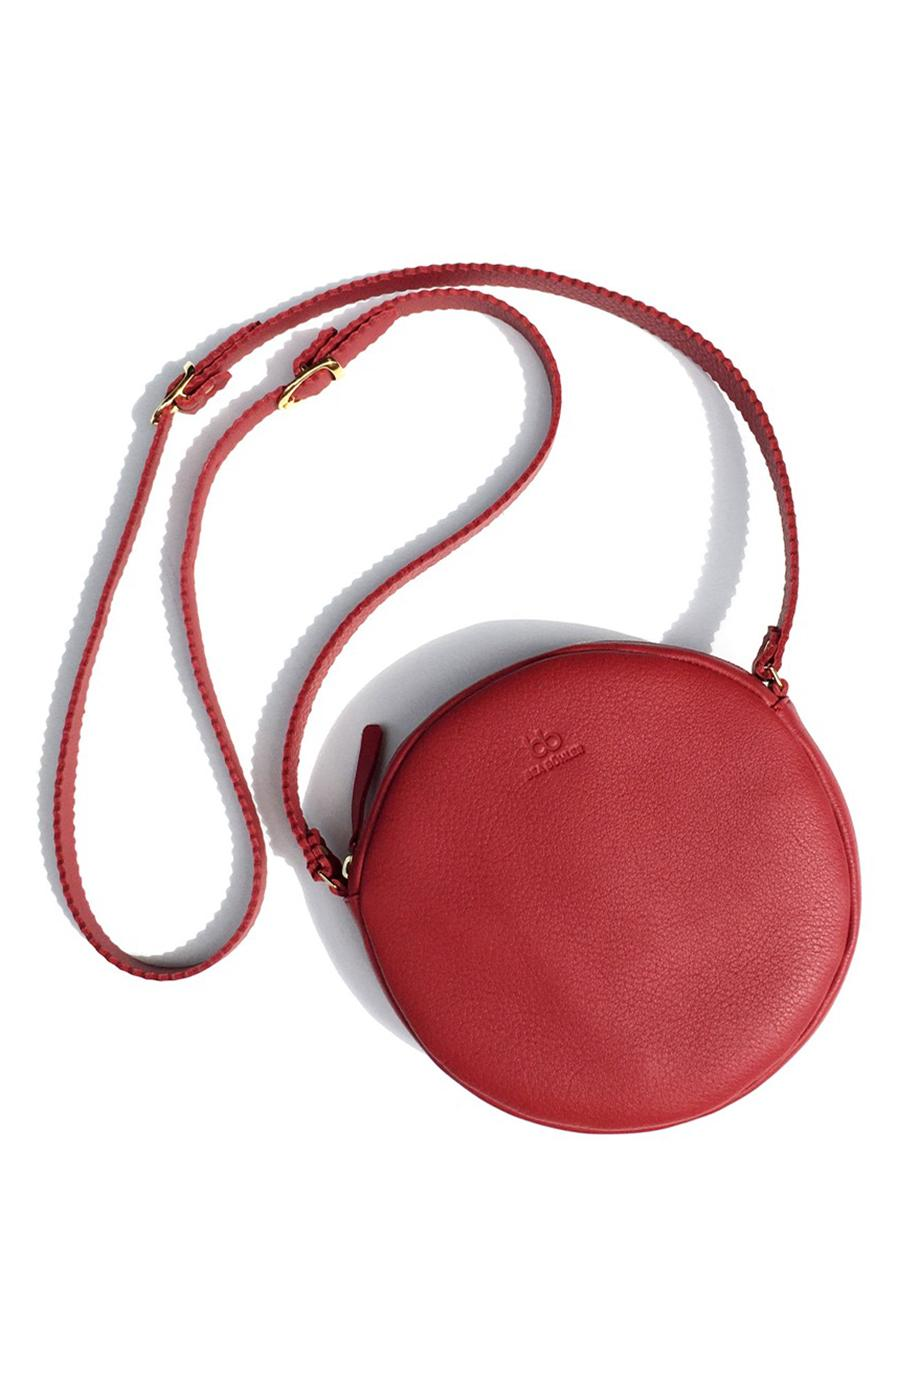 bea_buehler_dirndl_bag_red.jpg